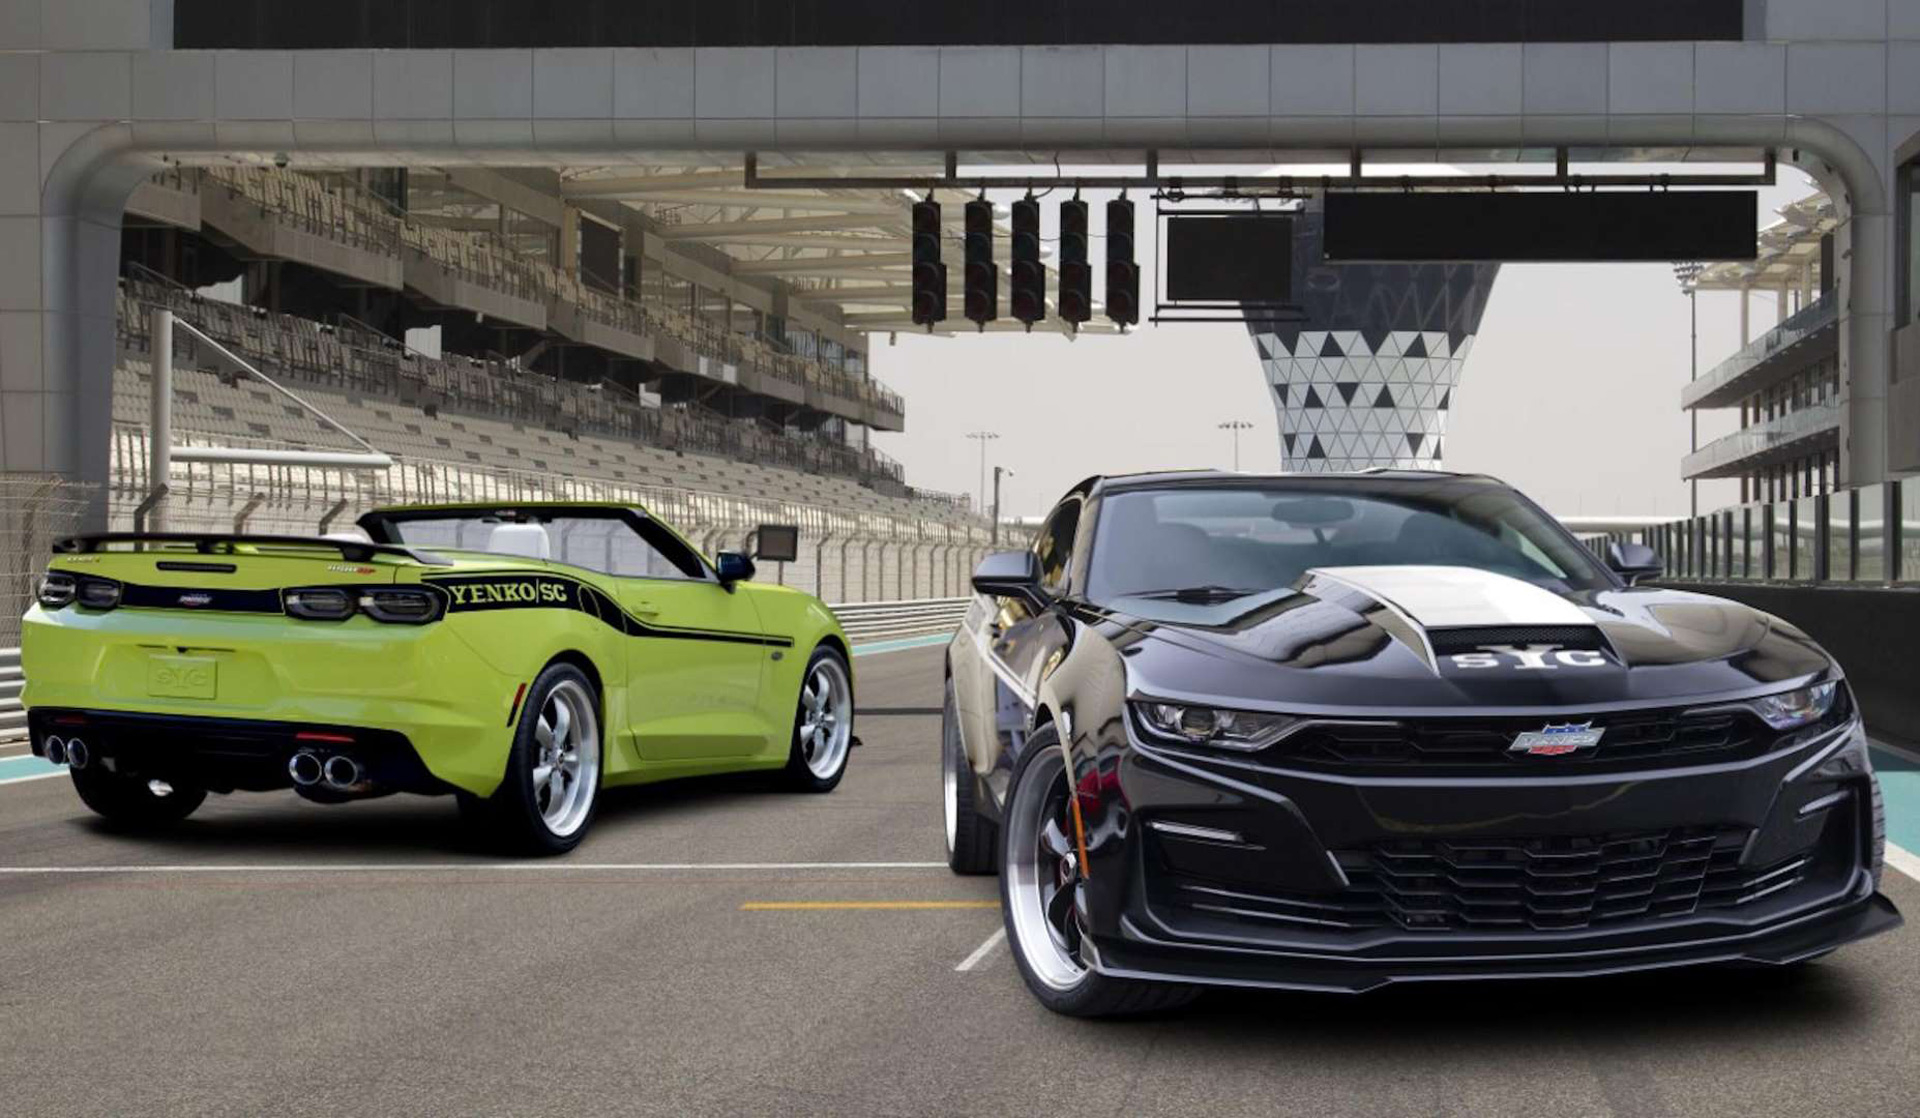 The 1,000-Horsepower Yenko/sc Camaro Is Now Available As A 2022 Chevy Camaro Ss Release Date, Exhaust, Features